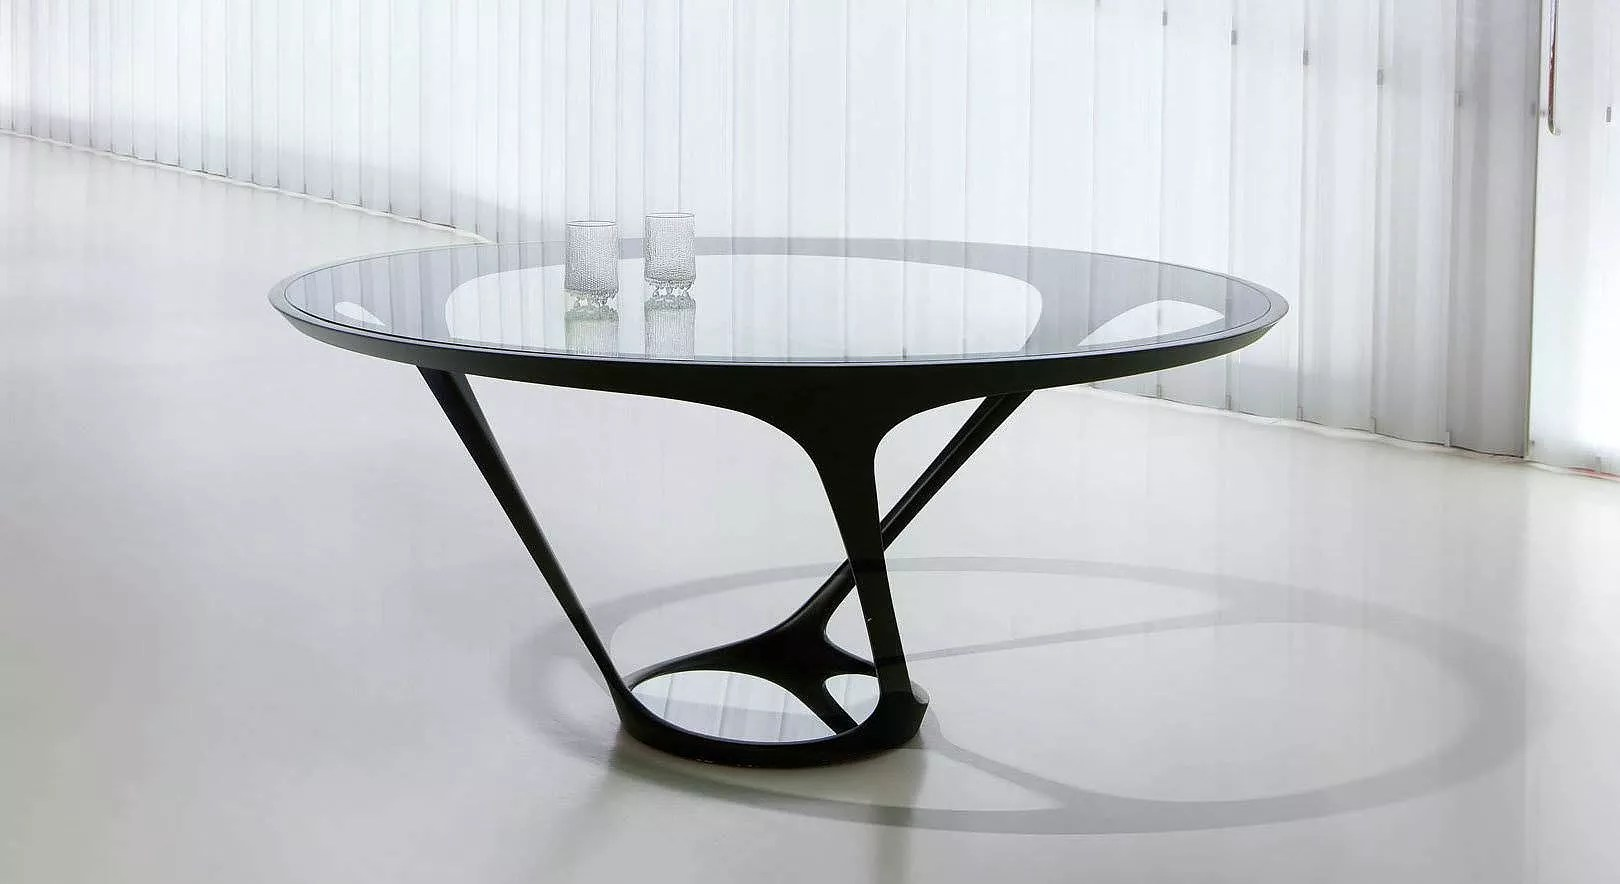 Couchtisch Glas Rund Design Ora-ito Round Dining Table By Roche Bobois. - Design Is This